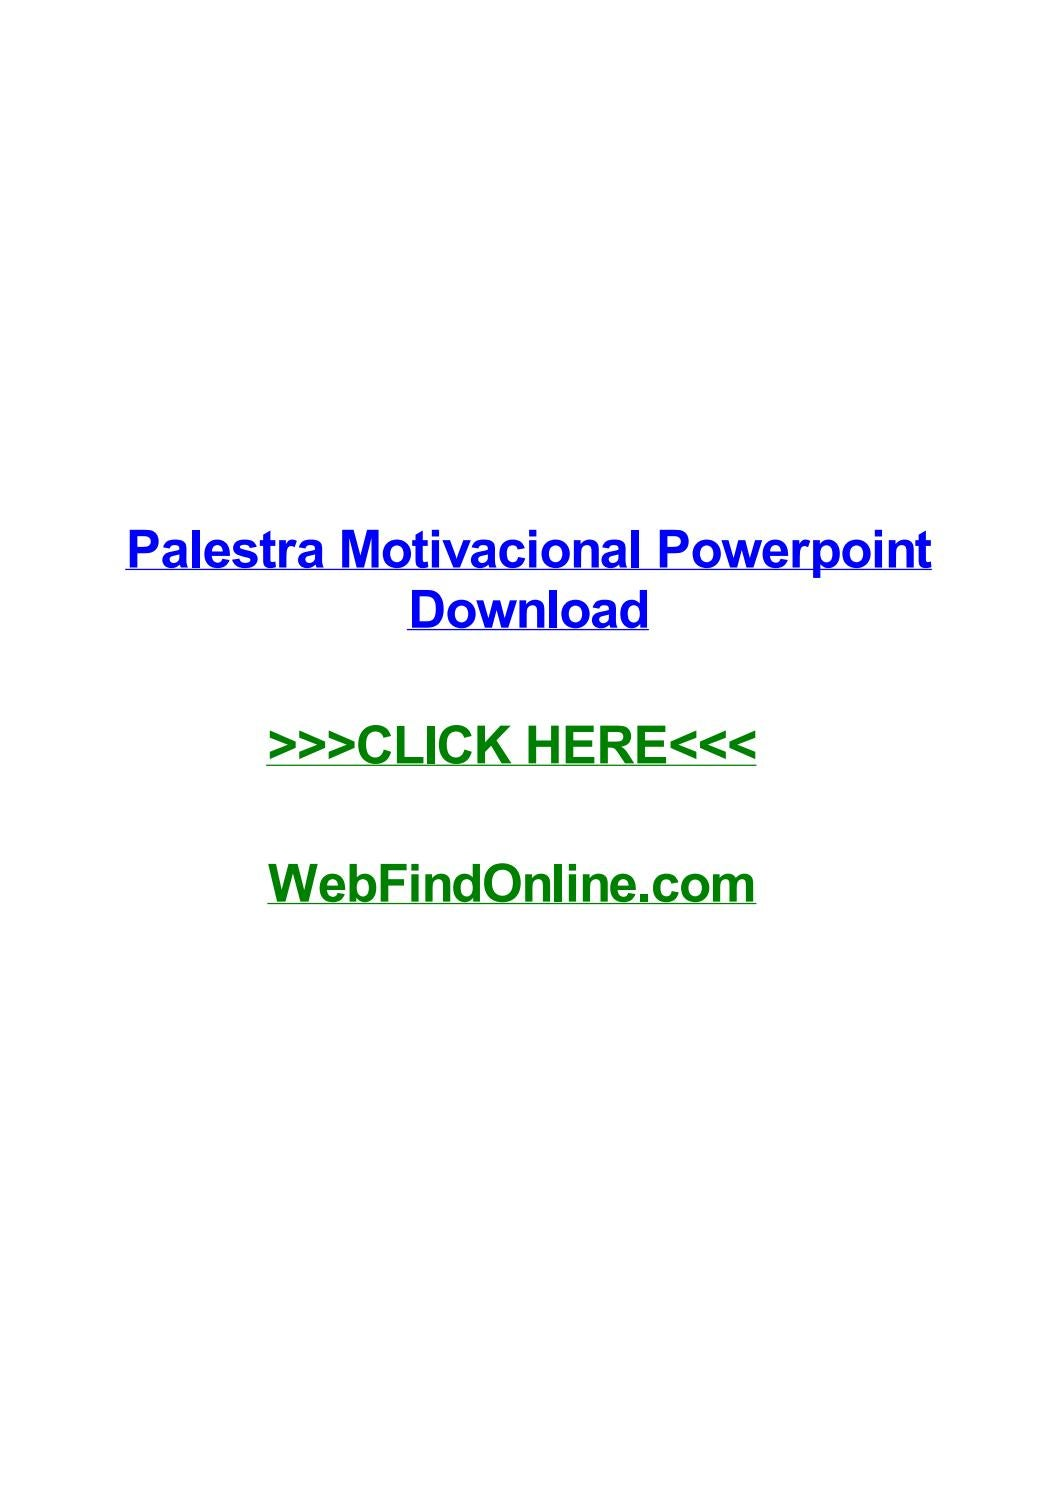 Palestra Motivacional Powerpoint Download By Lanaabqm Issuu